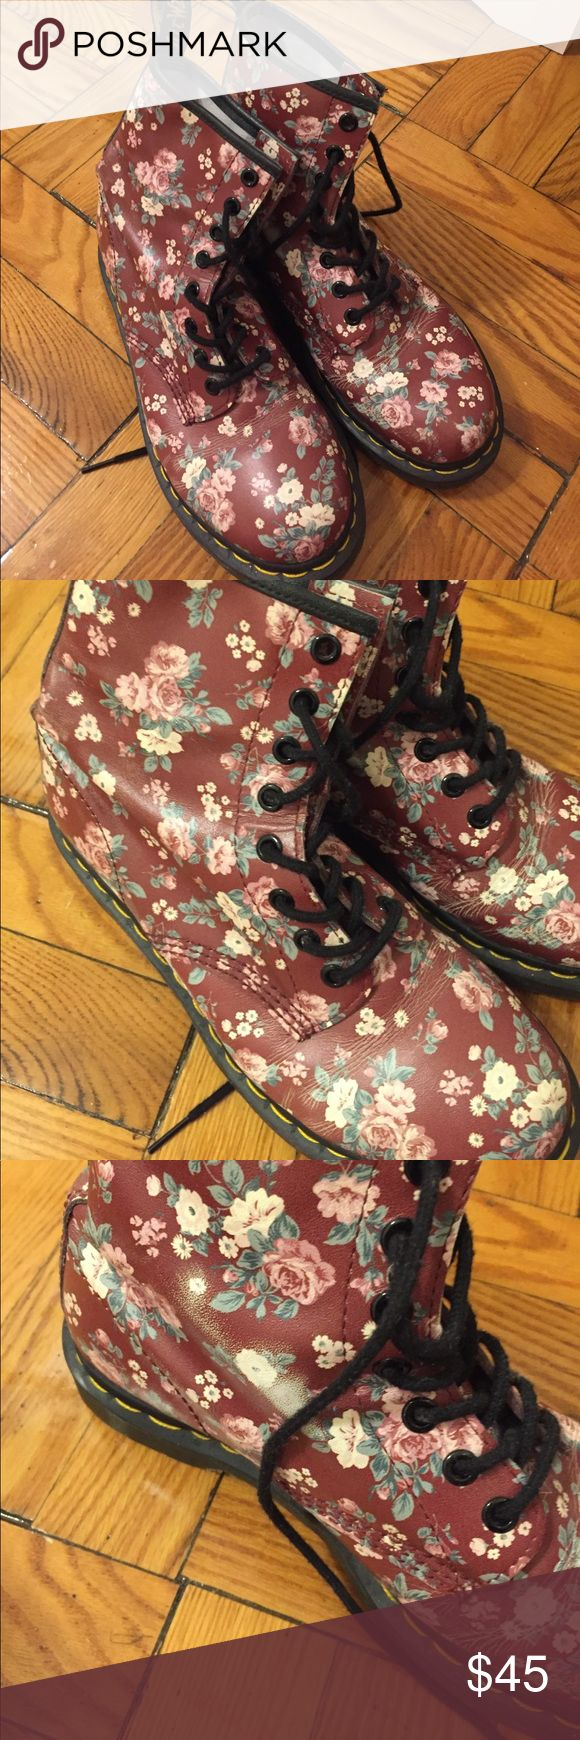 Doc Marten Floral Boots Maroon Doc Martens with floral print. Gently worn. Signs of wear (see pics) but still great condition. Doc Martens Shoes Combat & Moto Boots